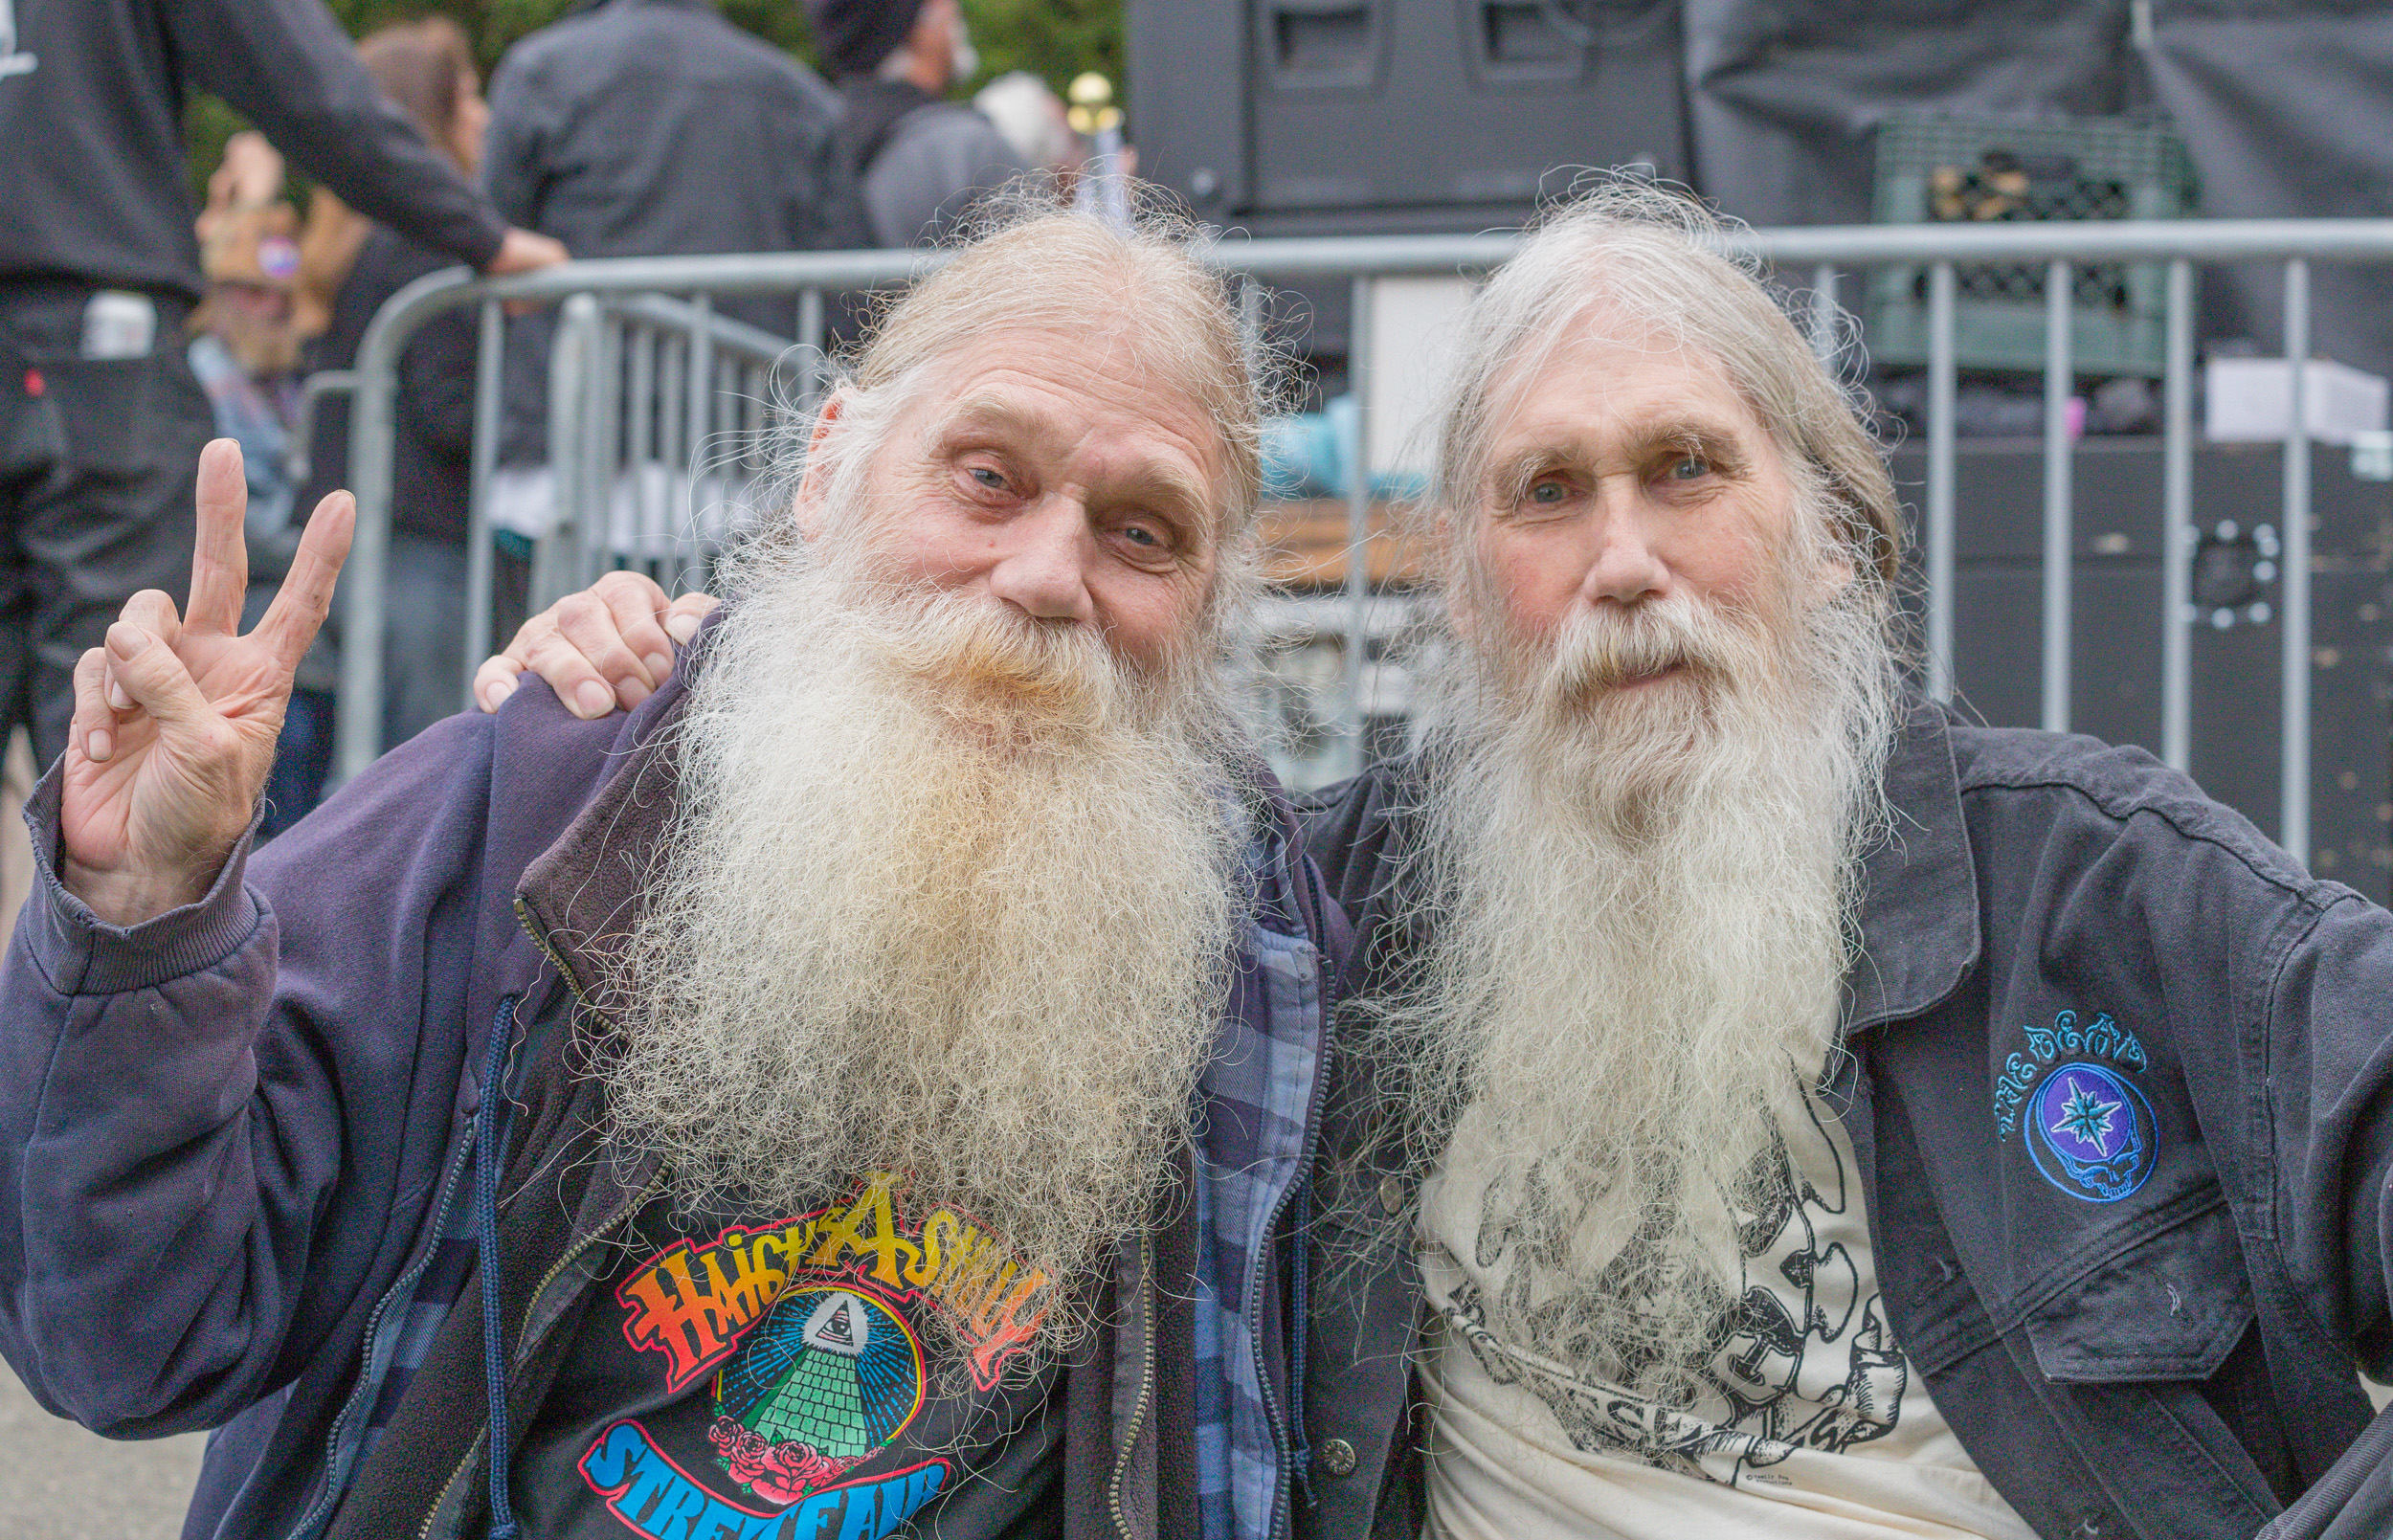 Veterans of the Bay Area Music Business. David and Bill Gerbe (Hippie Bill). When I ask permission to photograph people, I also offer them my card so I can send an image back to them if they reach back. Sometimes I also get a great story of who they are. Bill called after our email exchange and filled me in on a life of concerts in the bay area, from volunteering to working for Bill Graham Productions.  Summer Solstice 3. Golden Gate Park. 2019. Canon EOS 5DS R